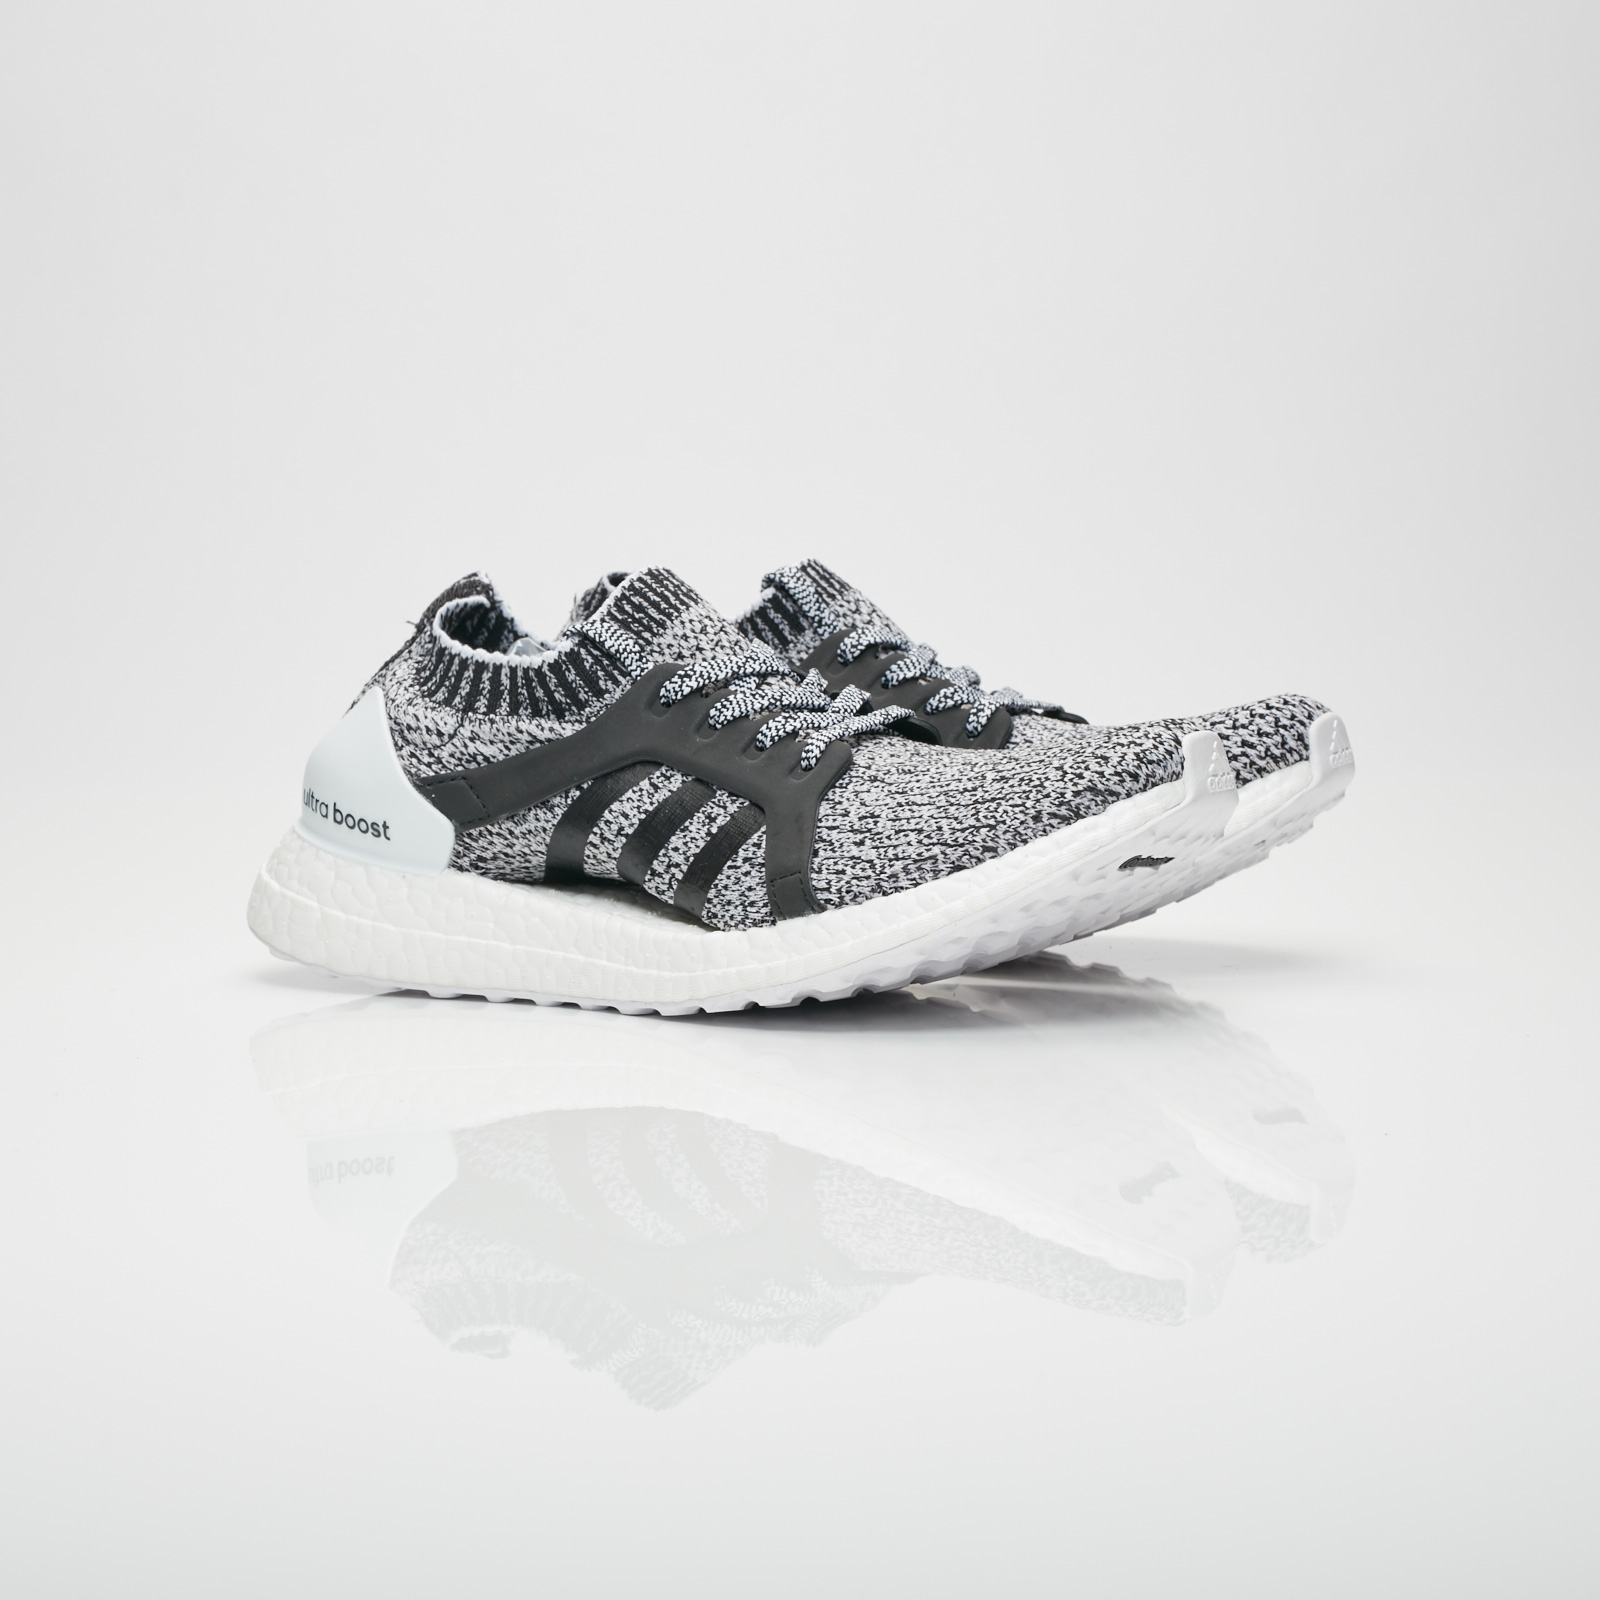 hot sale online a25ad 007ae adidas UltraBOOST X - Cg2977 - Sneakersnstuff | sneakers ...